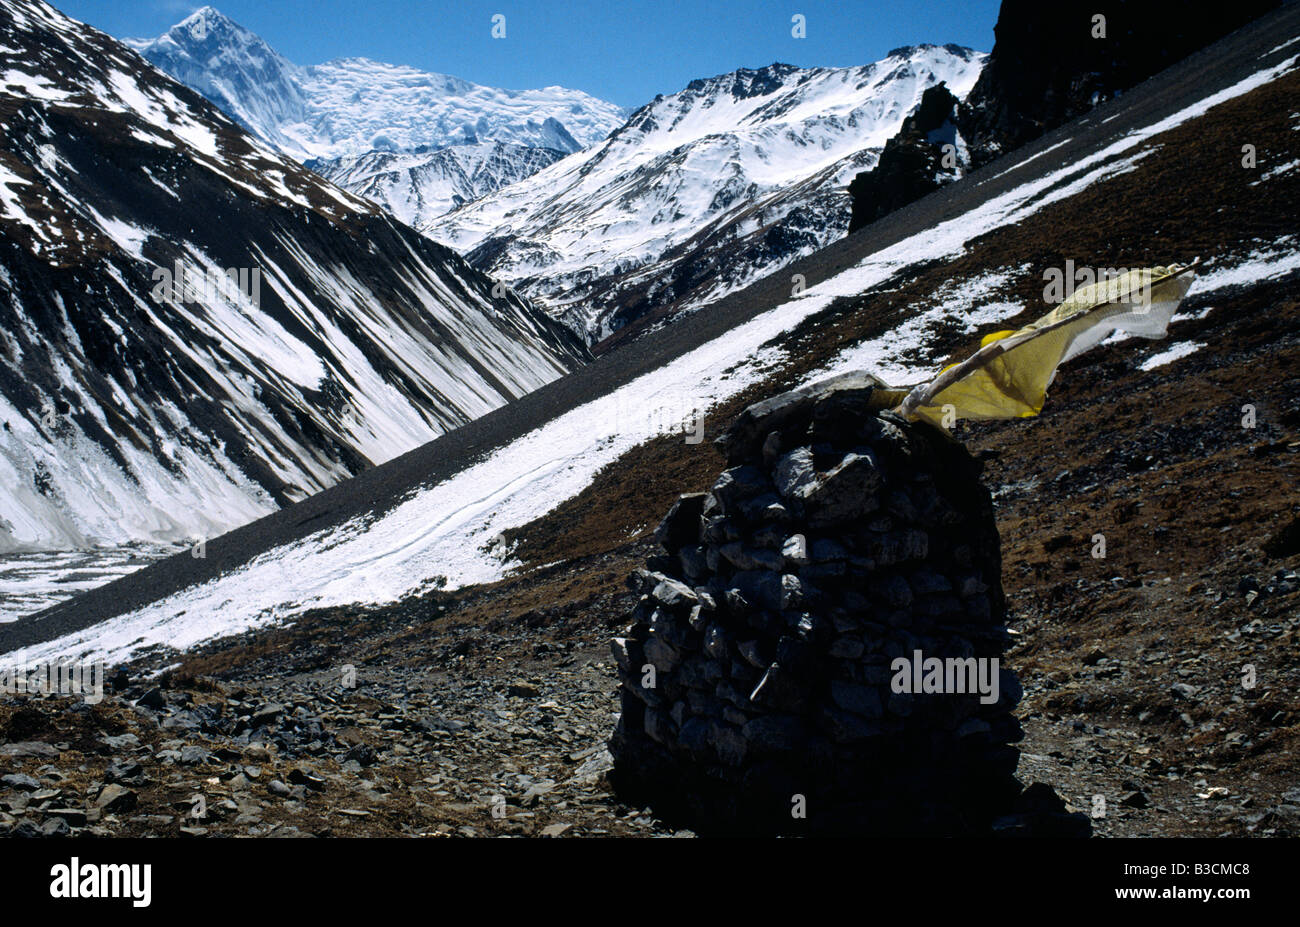 PICTURES CREDIT DOUG BLANE Trekking around the Annapurna circuit in Himalayan Kingdom of Nepal Nepalese Himalayas Stock Photo